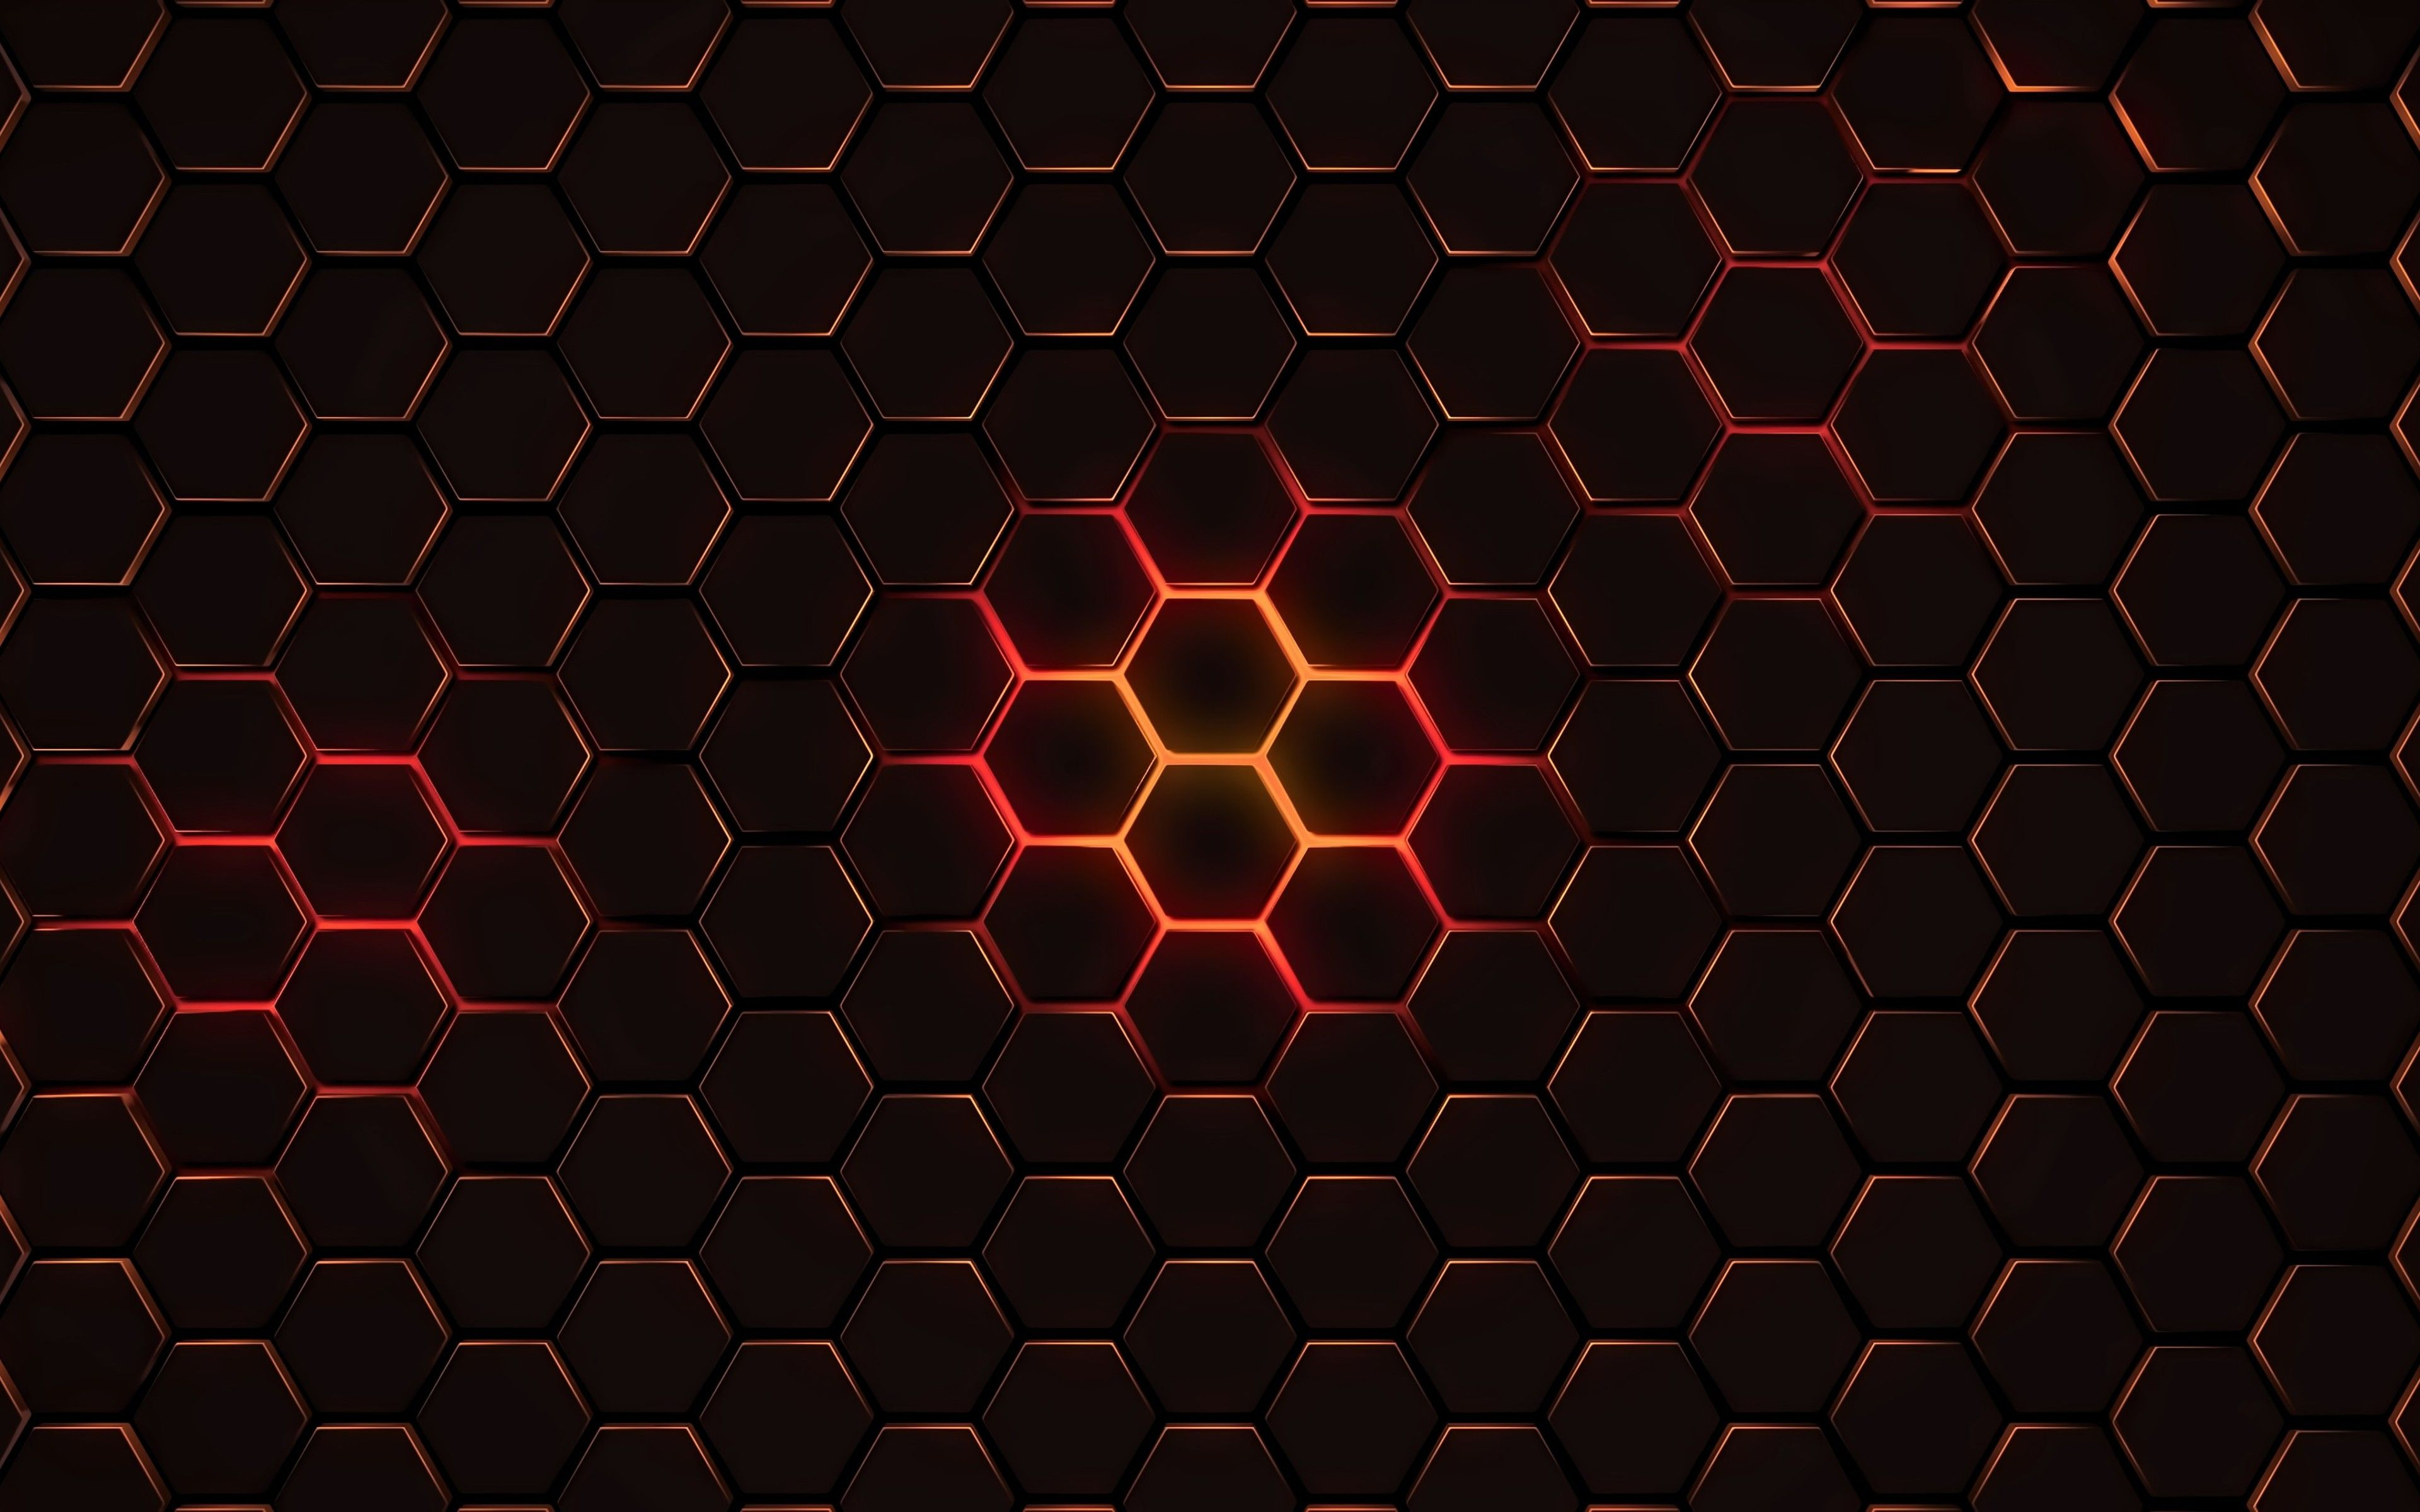 Hexagon Pattern Background Wallpaper For Desktop In High